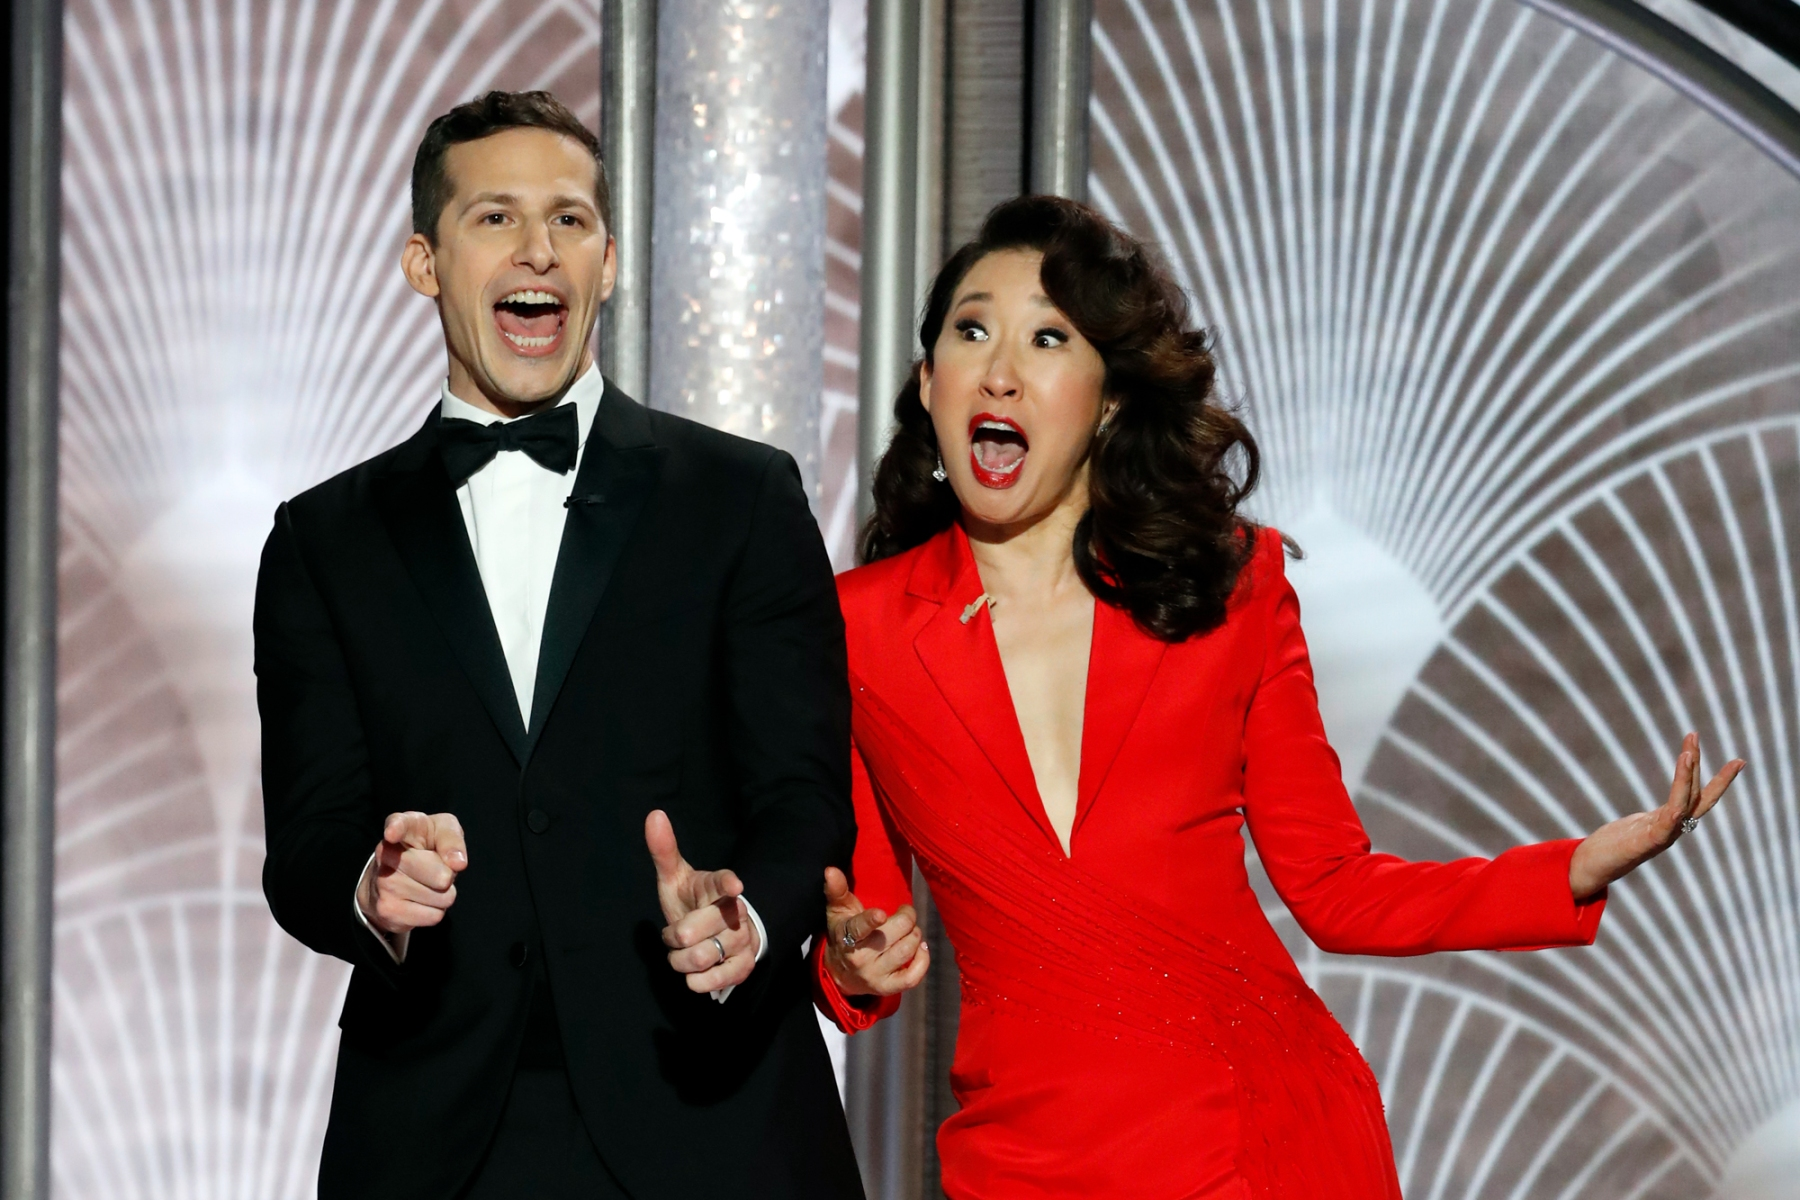 76th ANNUAL GOLDEN GLOBE AWARDS -- Pictured: (l-r) Andy Samberg, Sandra Oh at the 76th Annual Golden Globe Awards held at the Beverly Hilton Hotel on January 6, 2019 -- (Photo by: Paul Drinkwater/NBC)